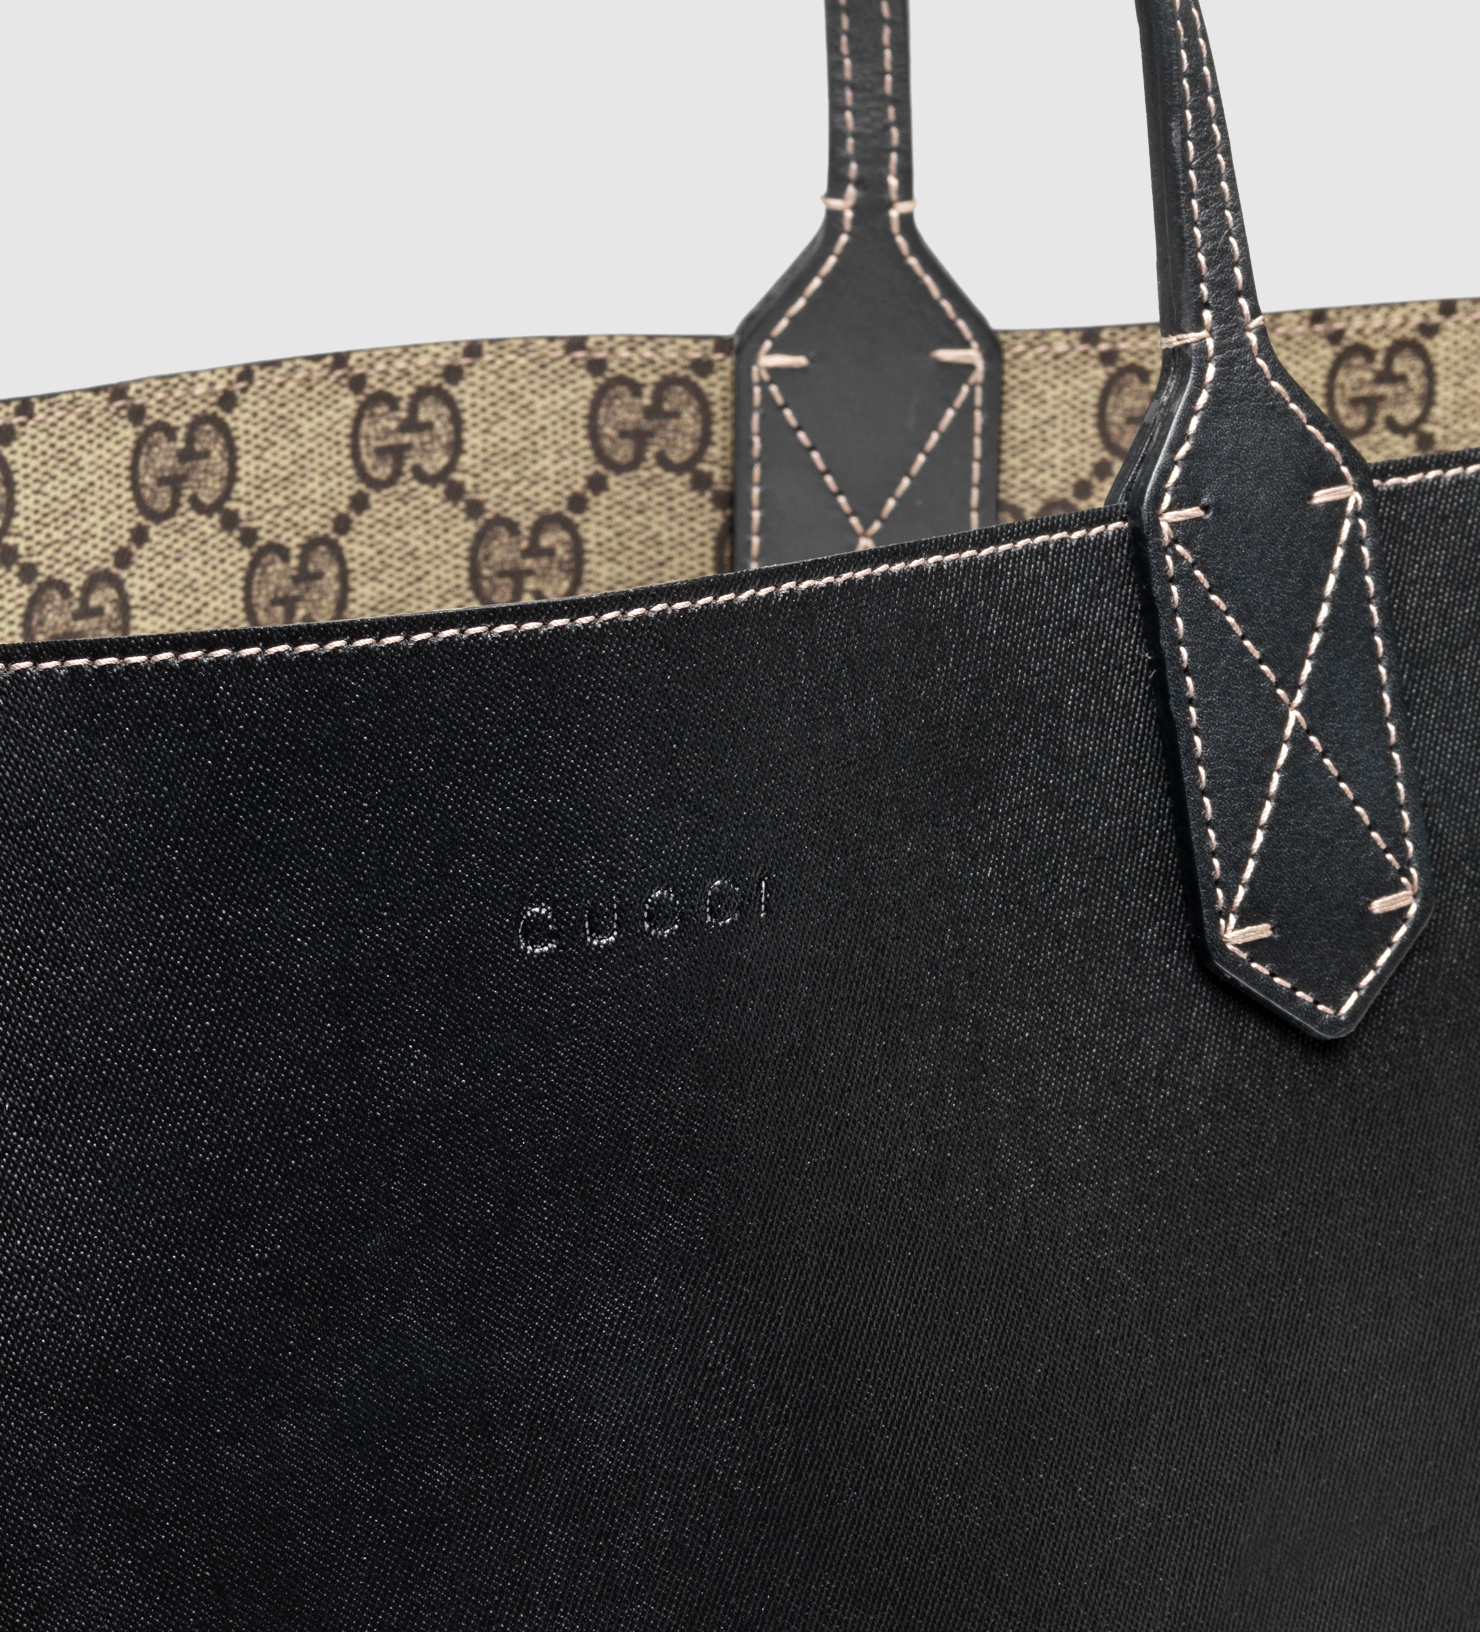 65fc1e847e7b Gucci Black Reversible Tote | Stanford Center for Opportunity Policy ...